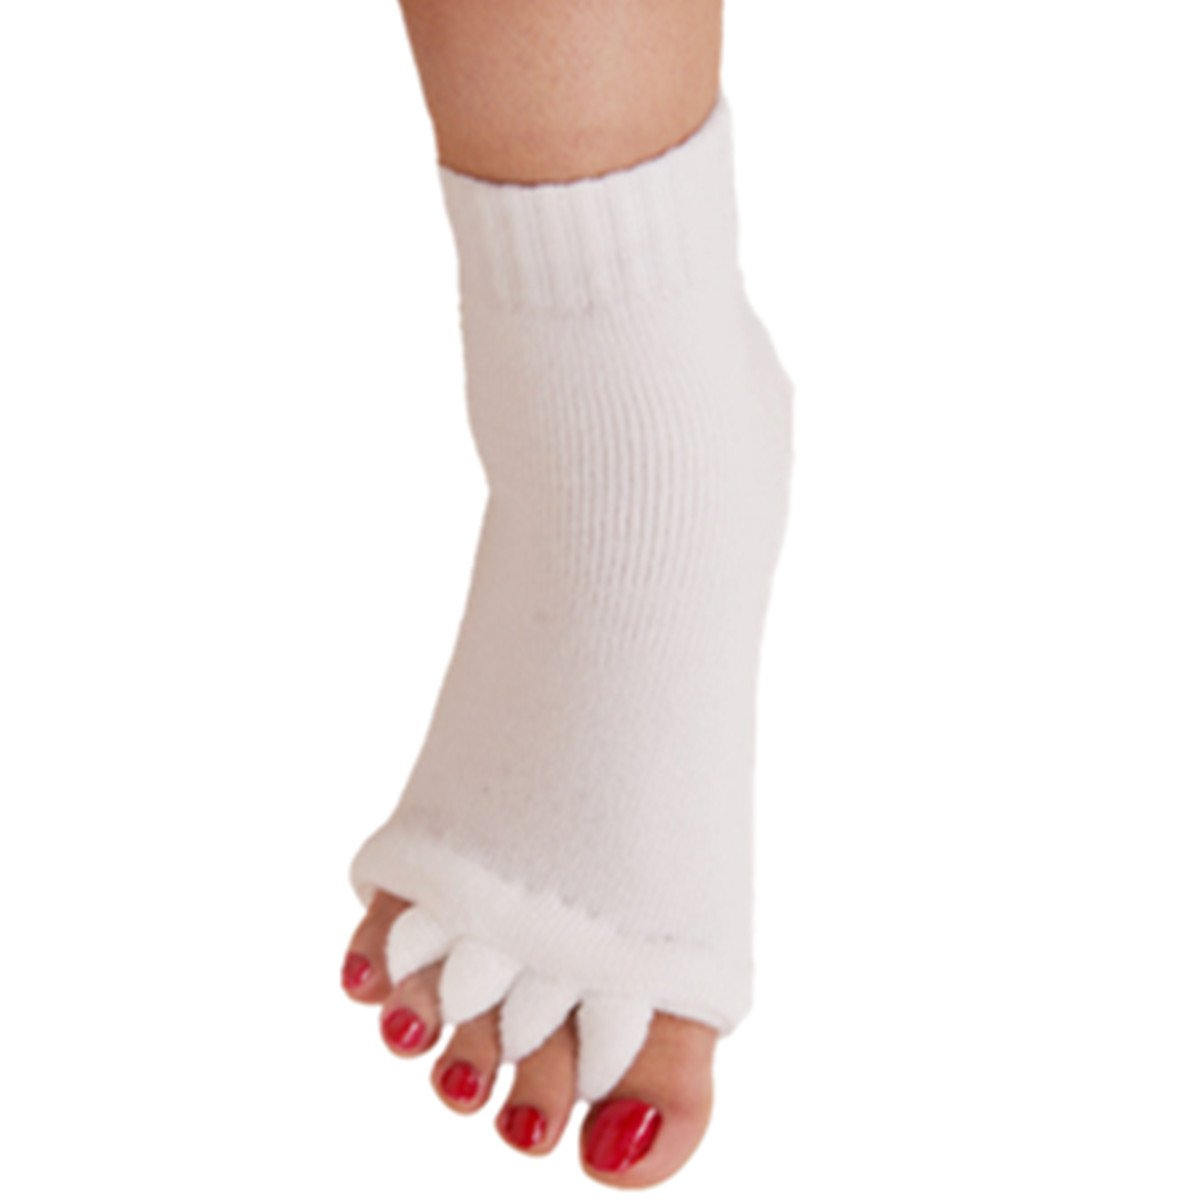 1 Pair Yoga GYM Massage Five Toe Separator Socks Foot Alignment Pain Relief Hot (One Size, A-White)